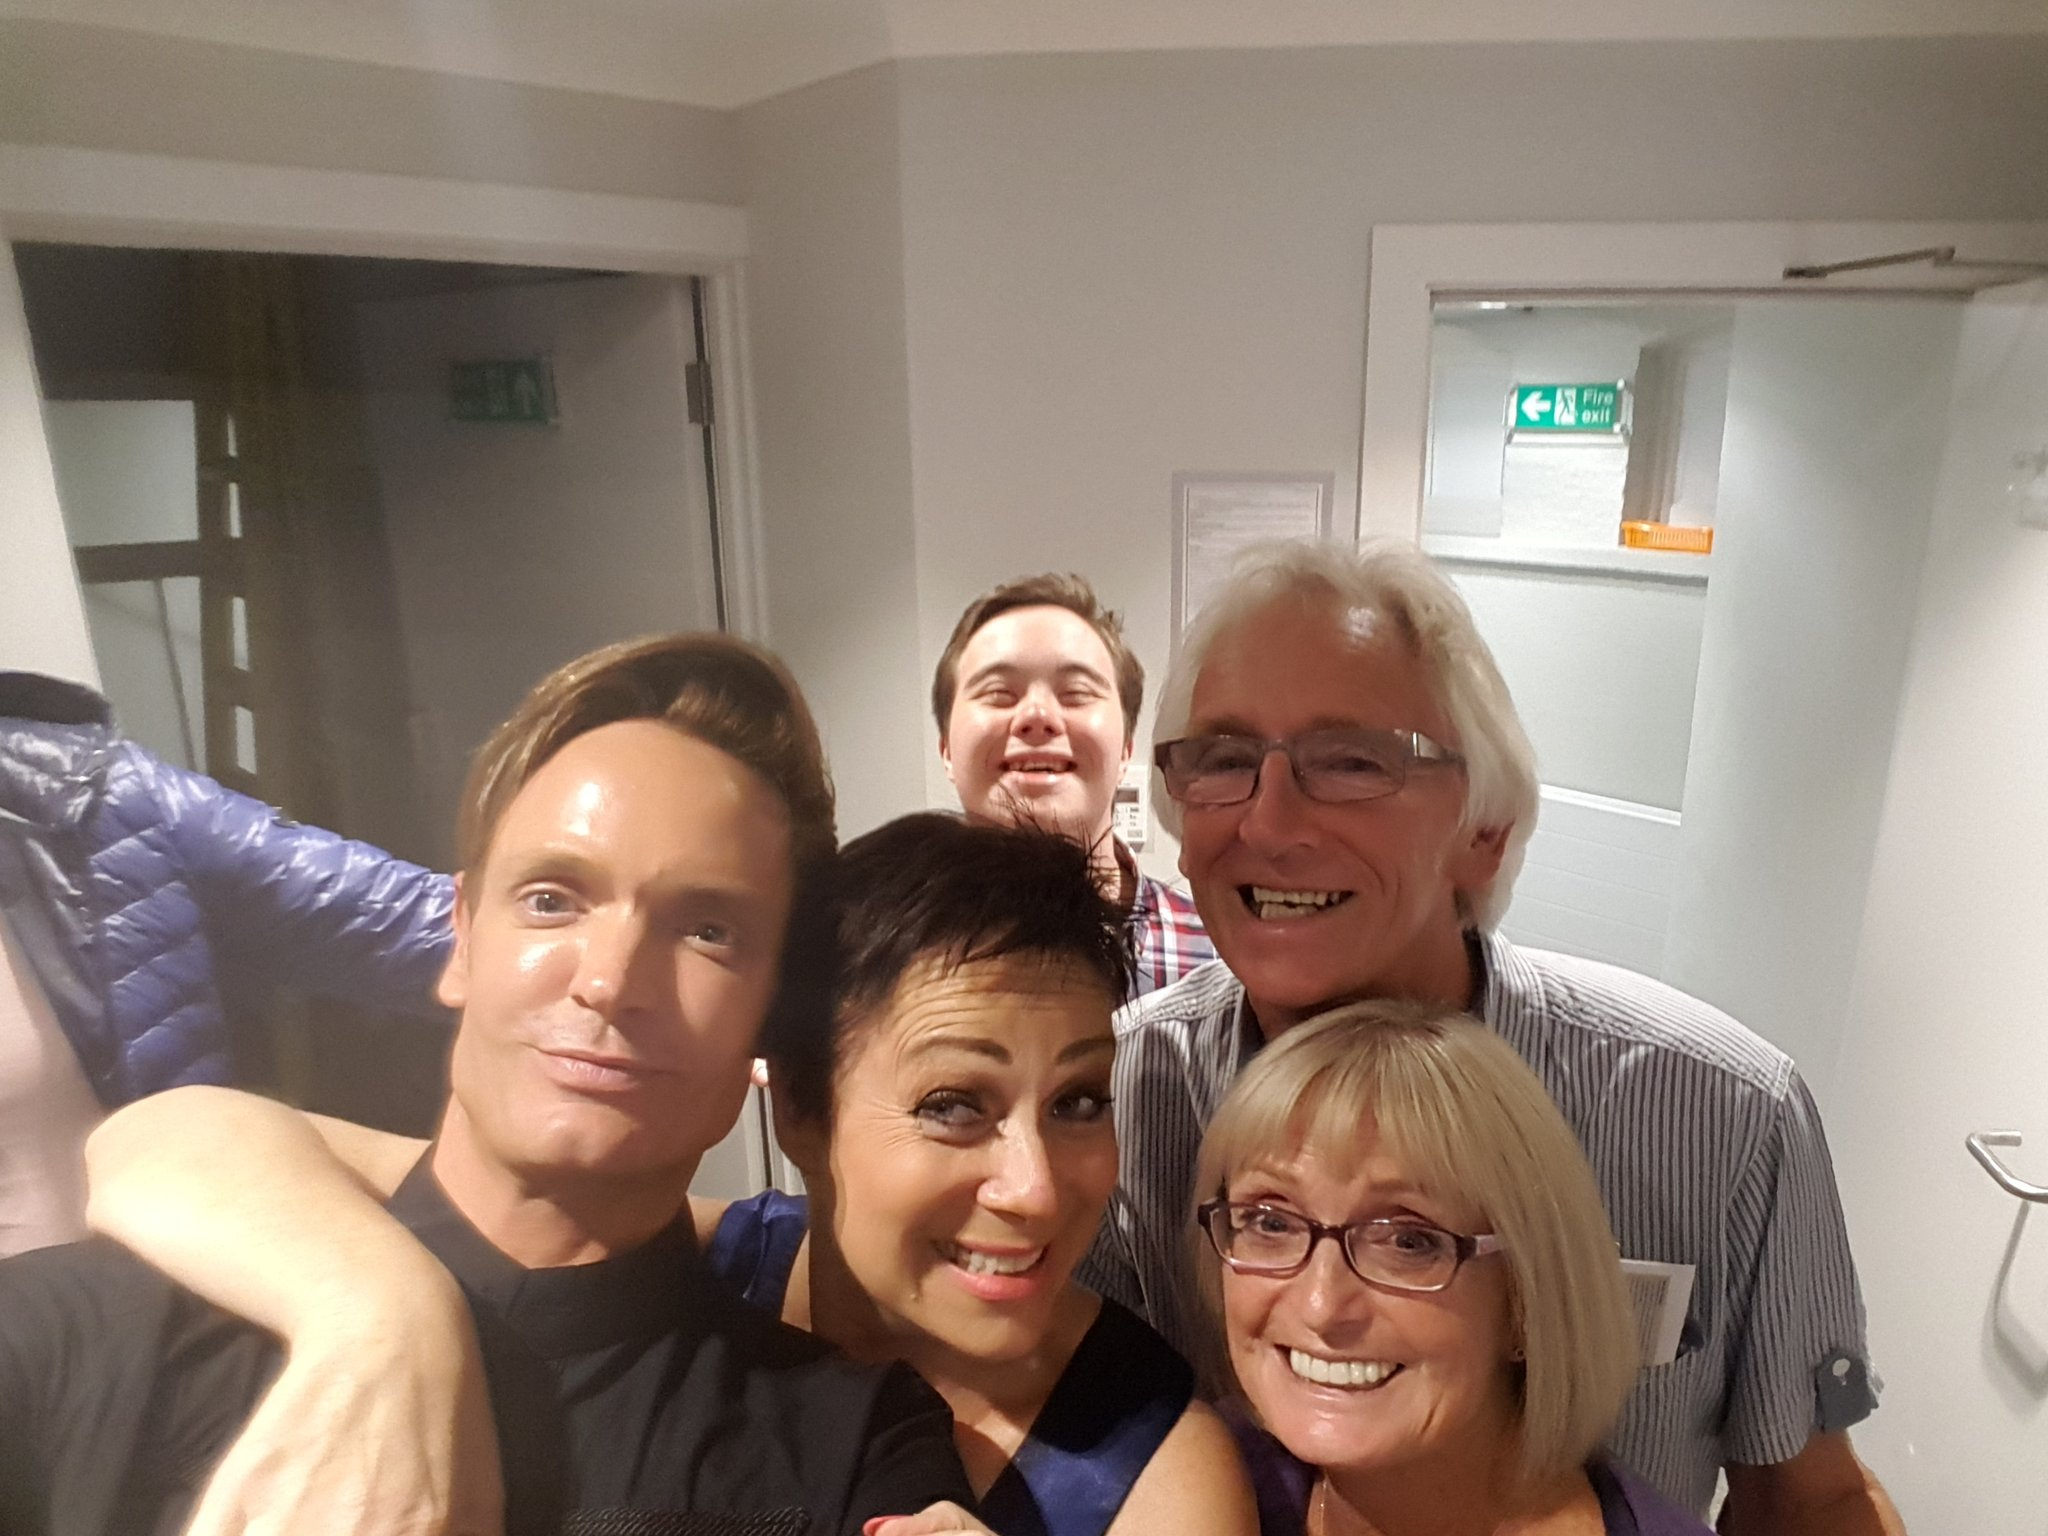 RT @paulscates: Home after the most amazing evening with my wonderful folks and the gorgeous @RealDeniseWelch https://t.co/mEVwOLiylg